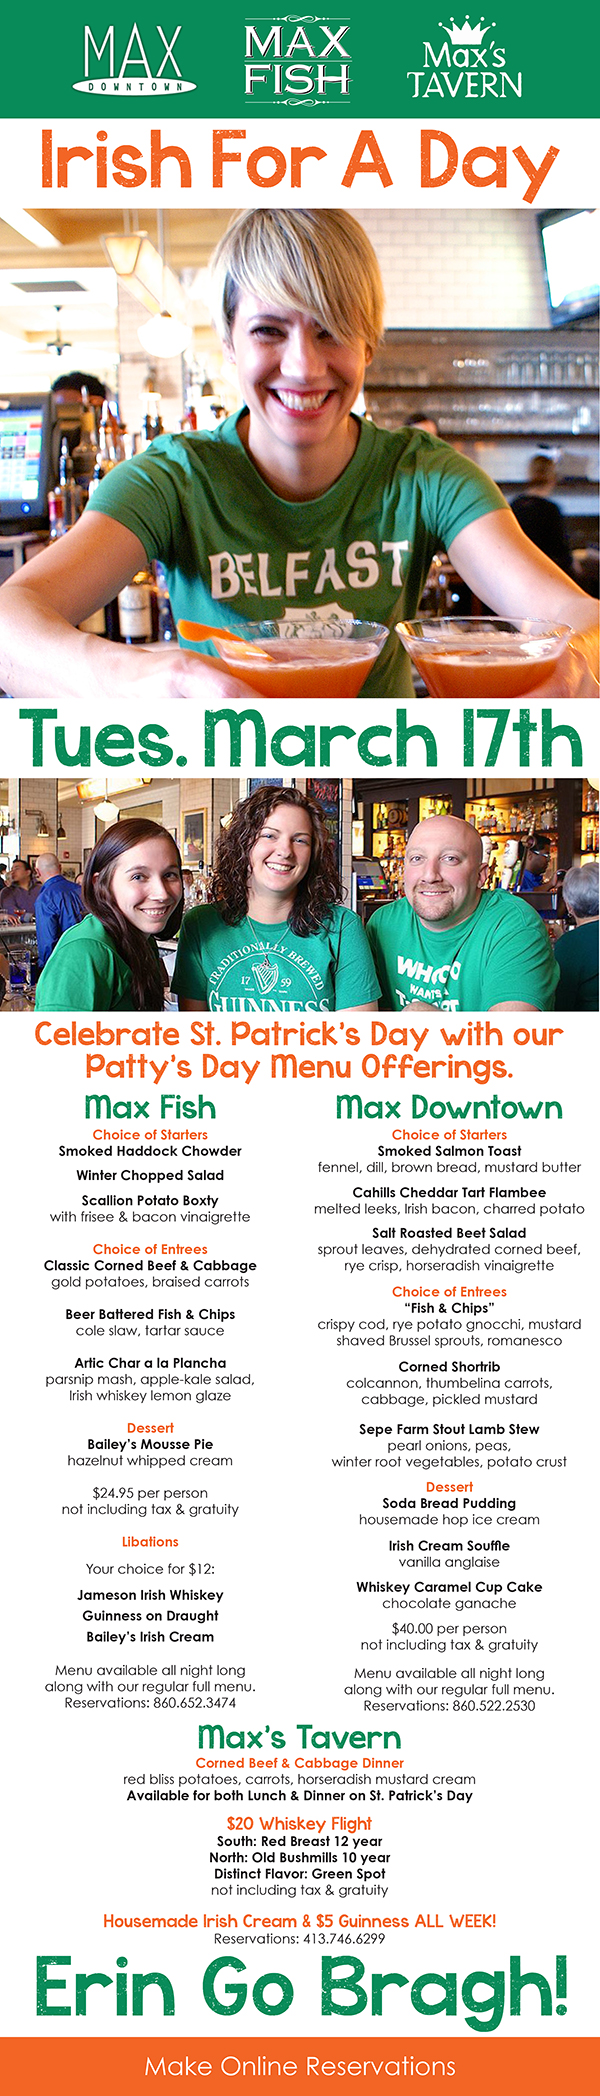 St.-Patrick's-Day-at-Max-2015